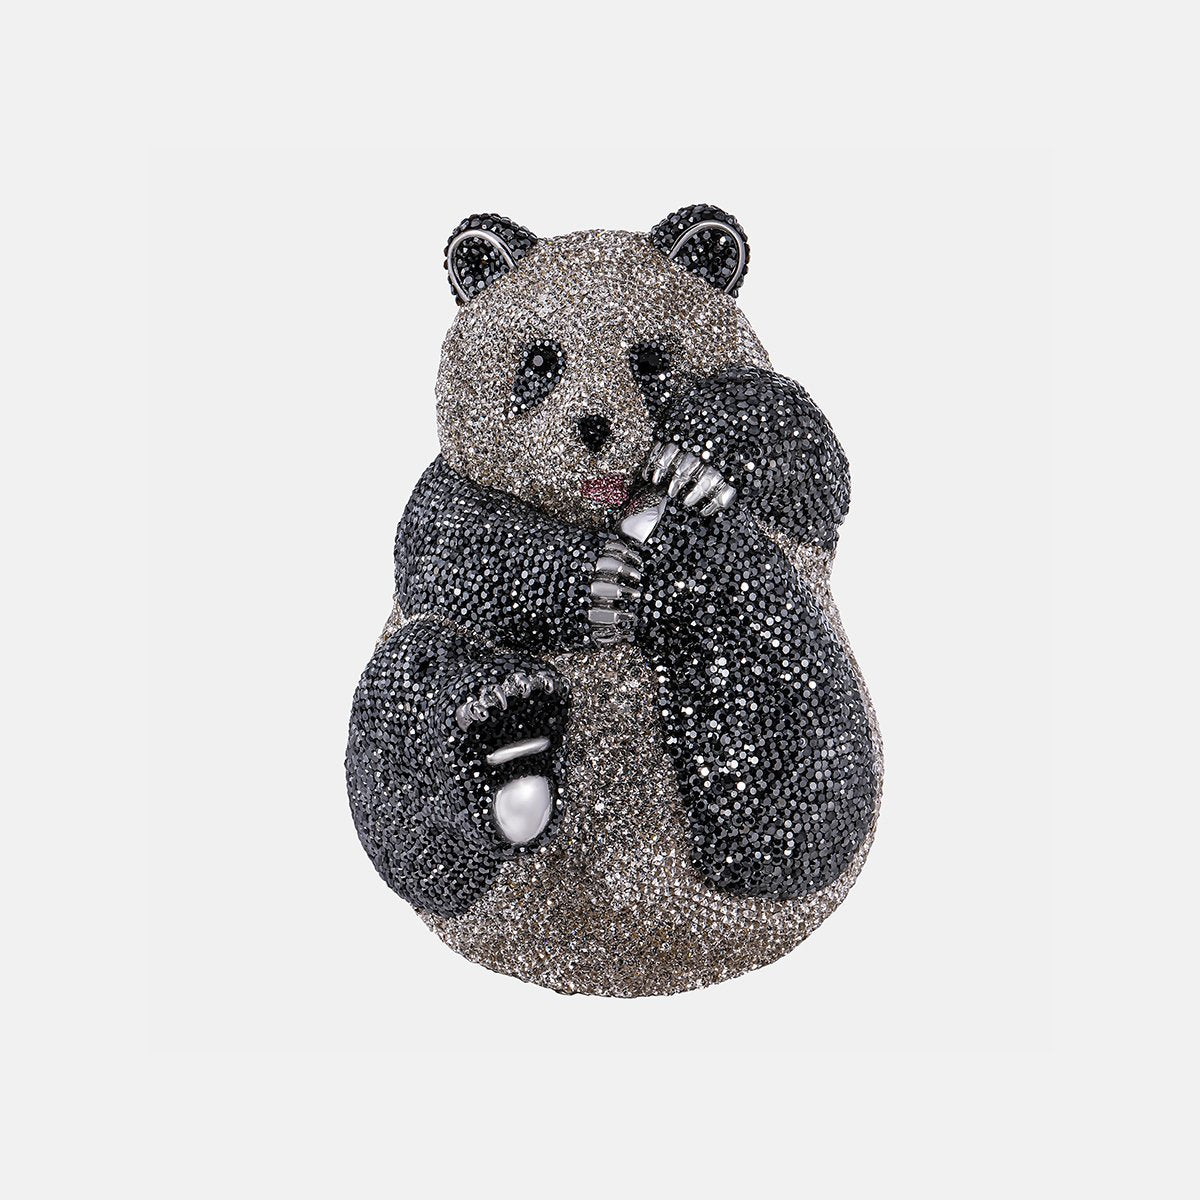 Asfour-Crystal-Panda-inlaid-with-colored-crystal-lobes